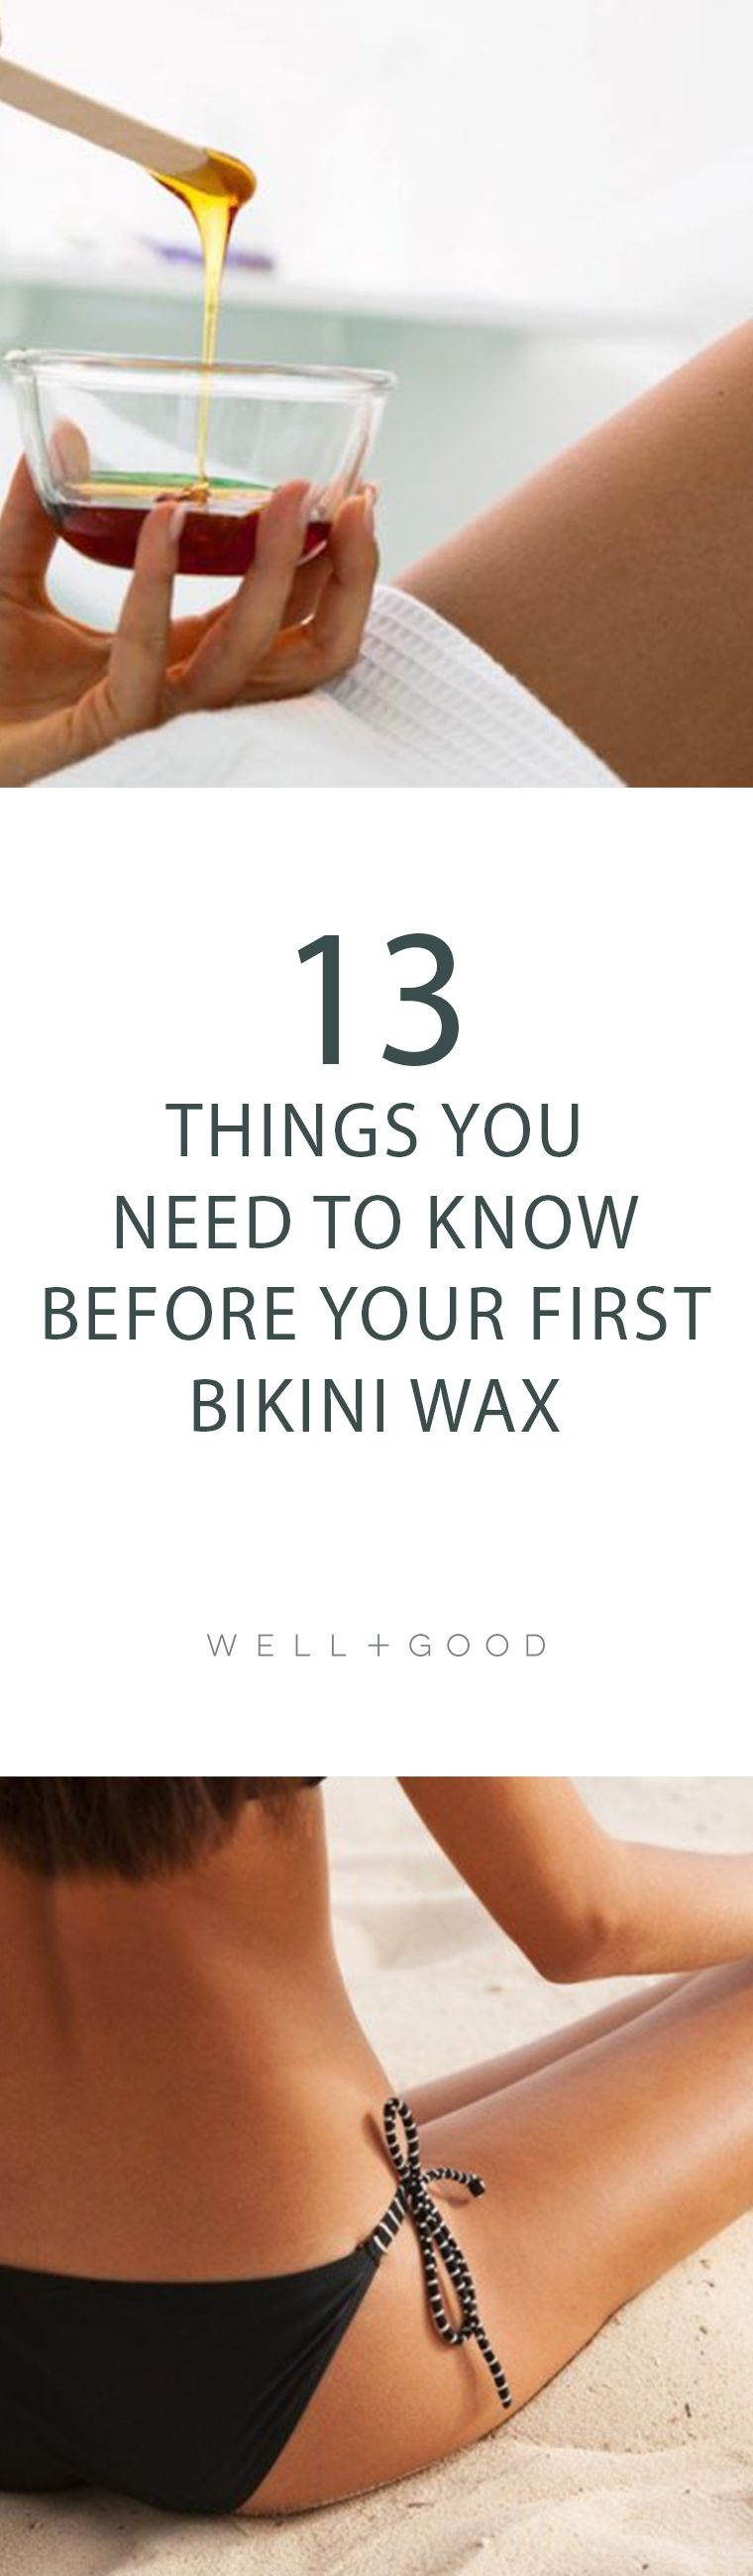 How to prep for a bikini wax Bikini wax, Bikini line wax